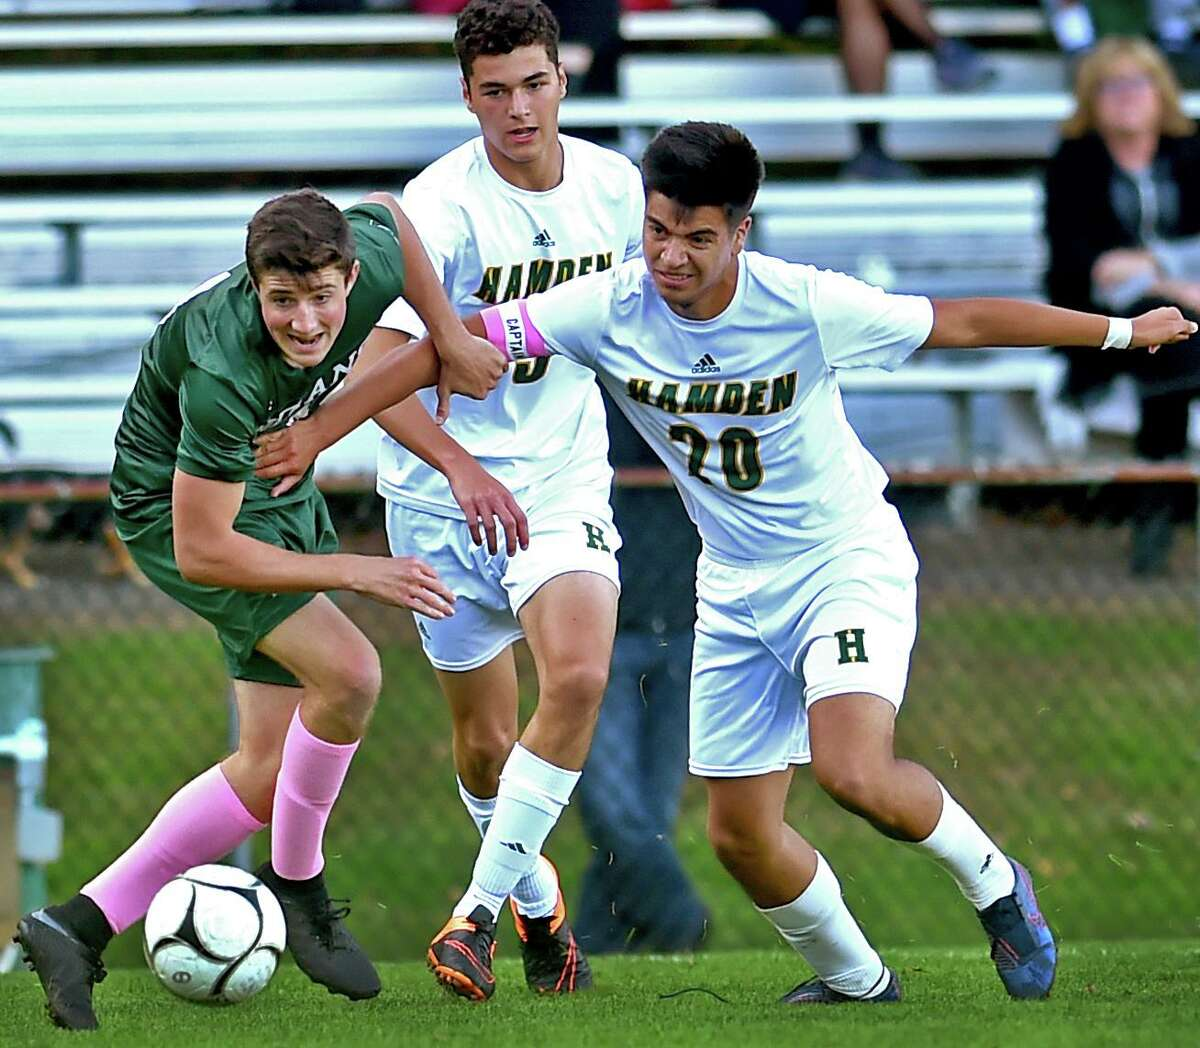 Devlin Ahlefeld of Guilford High School, left, seen earlier this season, scored the winner with under five minutes left to lift Guilford to a 1-0 win over Cheshire.